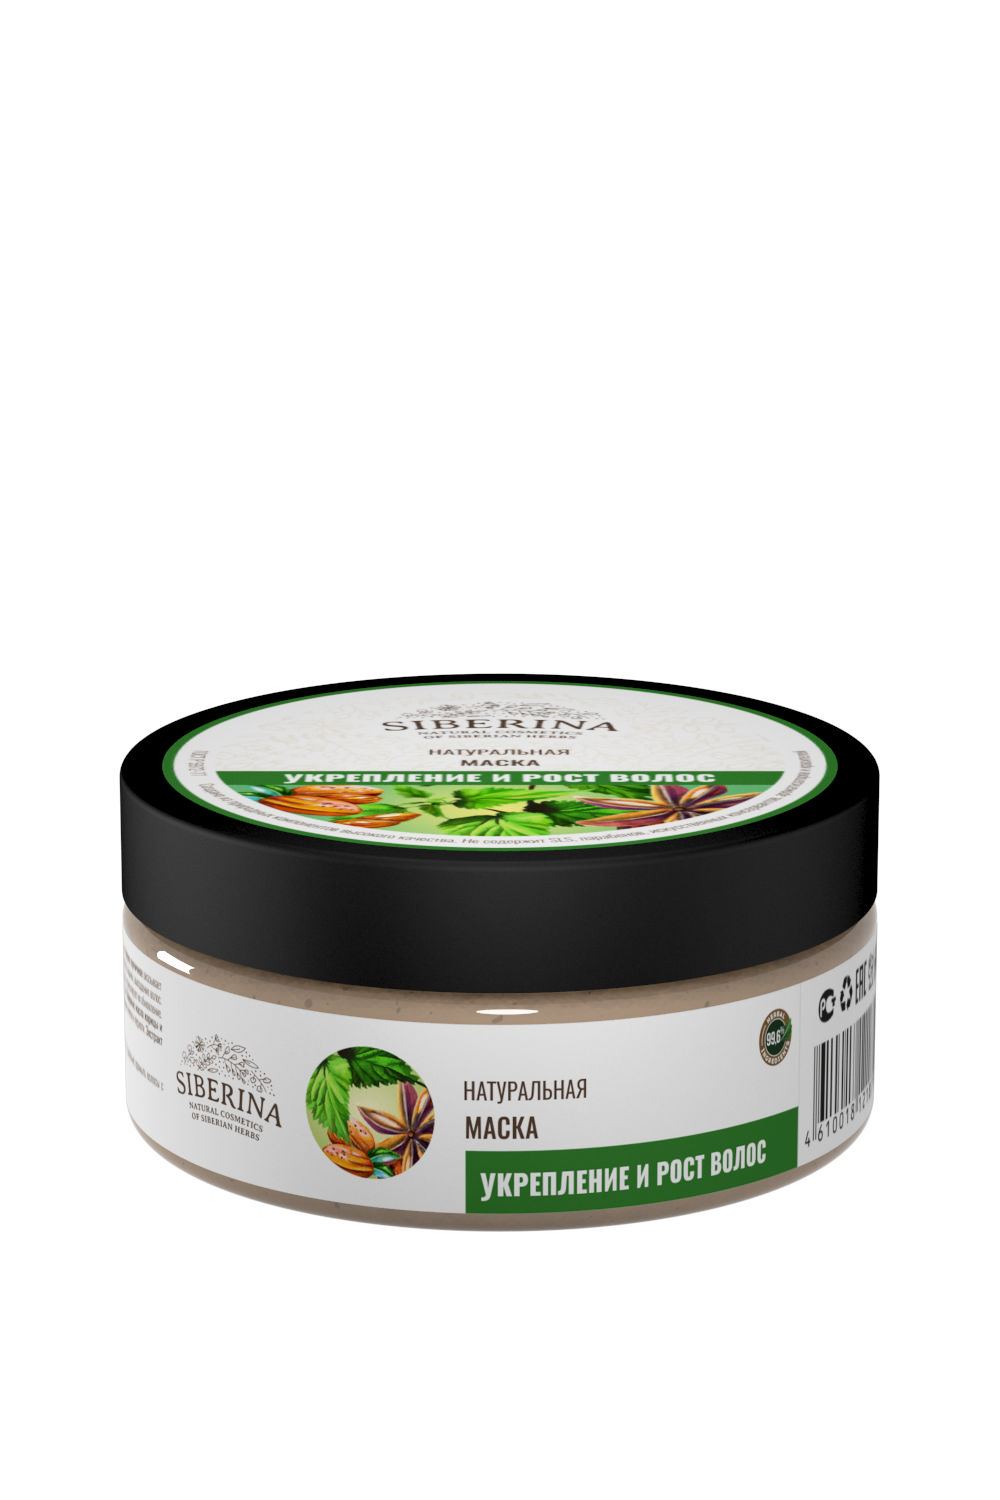 Hair Strengthening and Growth Mask